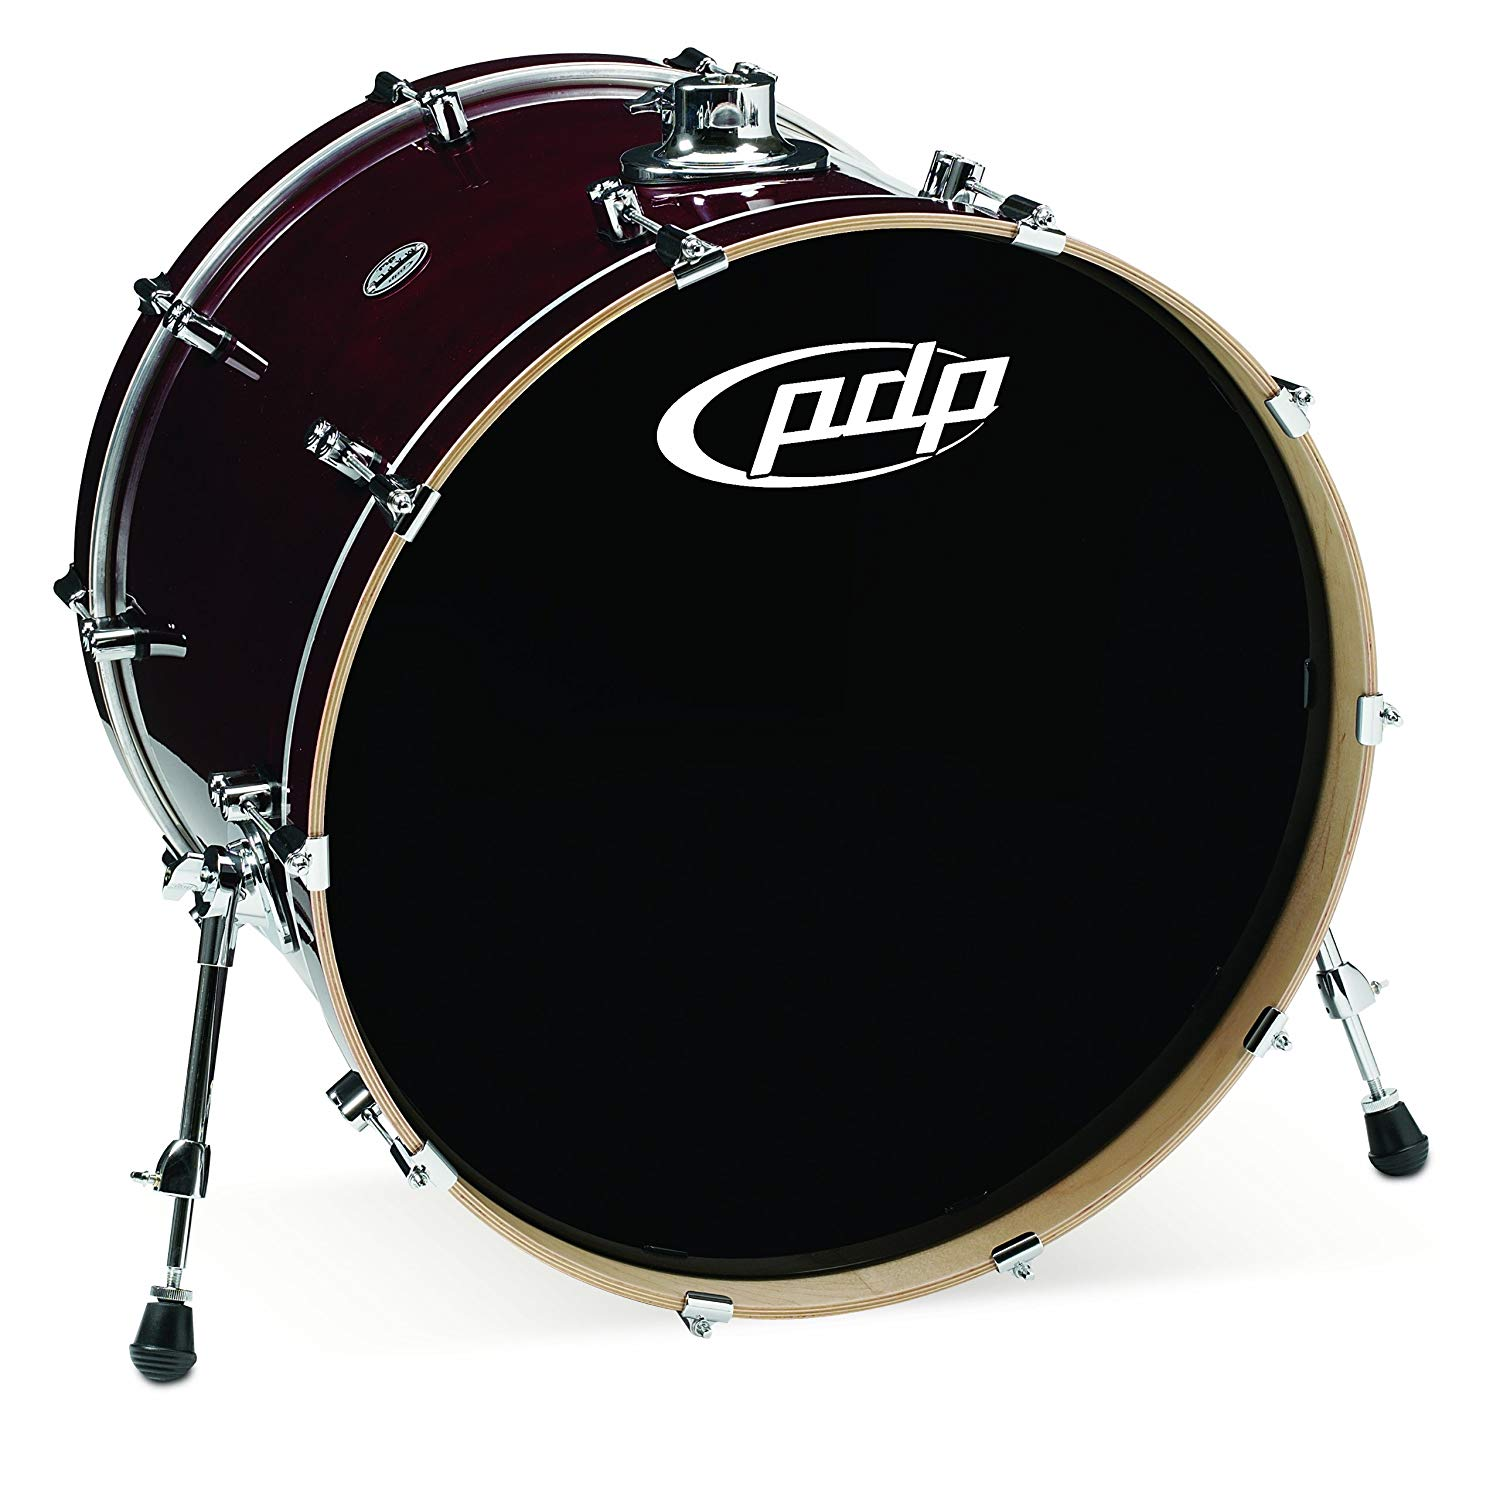 Pacific Drums PDCM1824KKTC 18 x 24 Inches Bass Drum with Chrome Hardware - Transparent Cherry